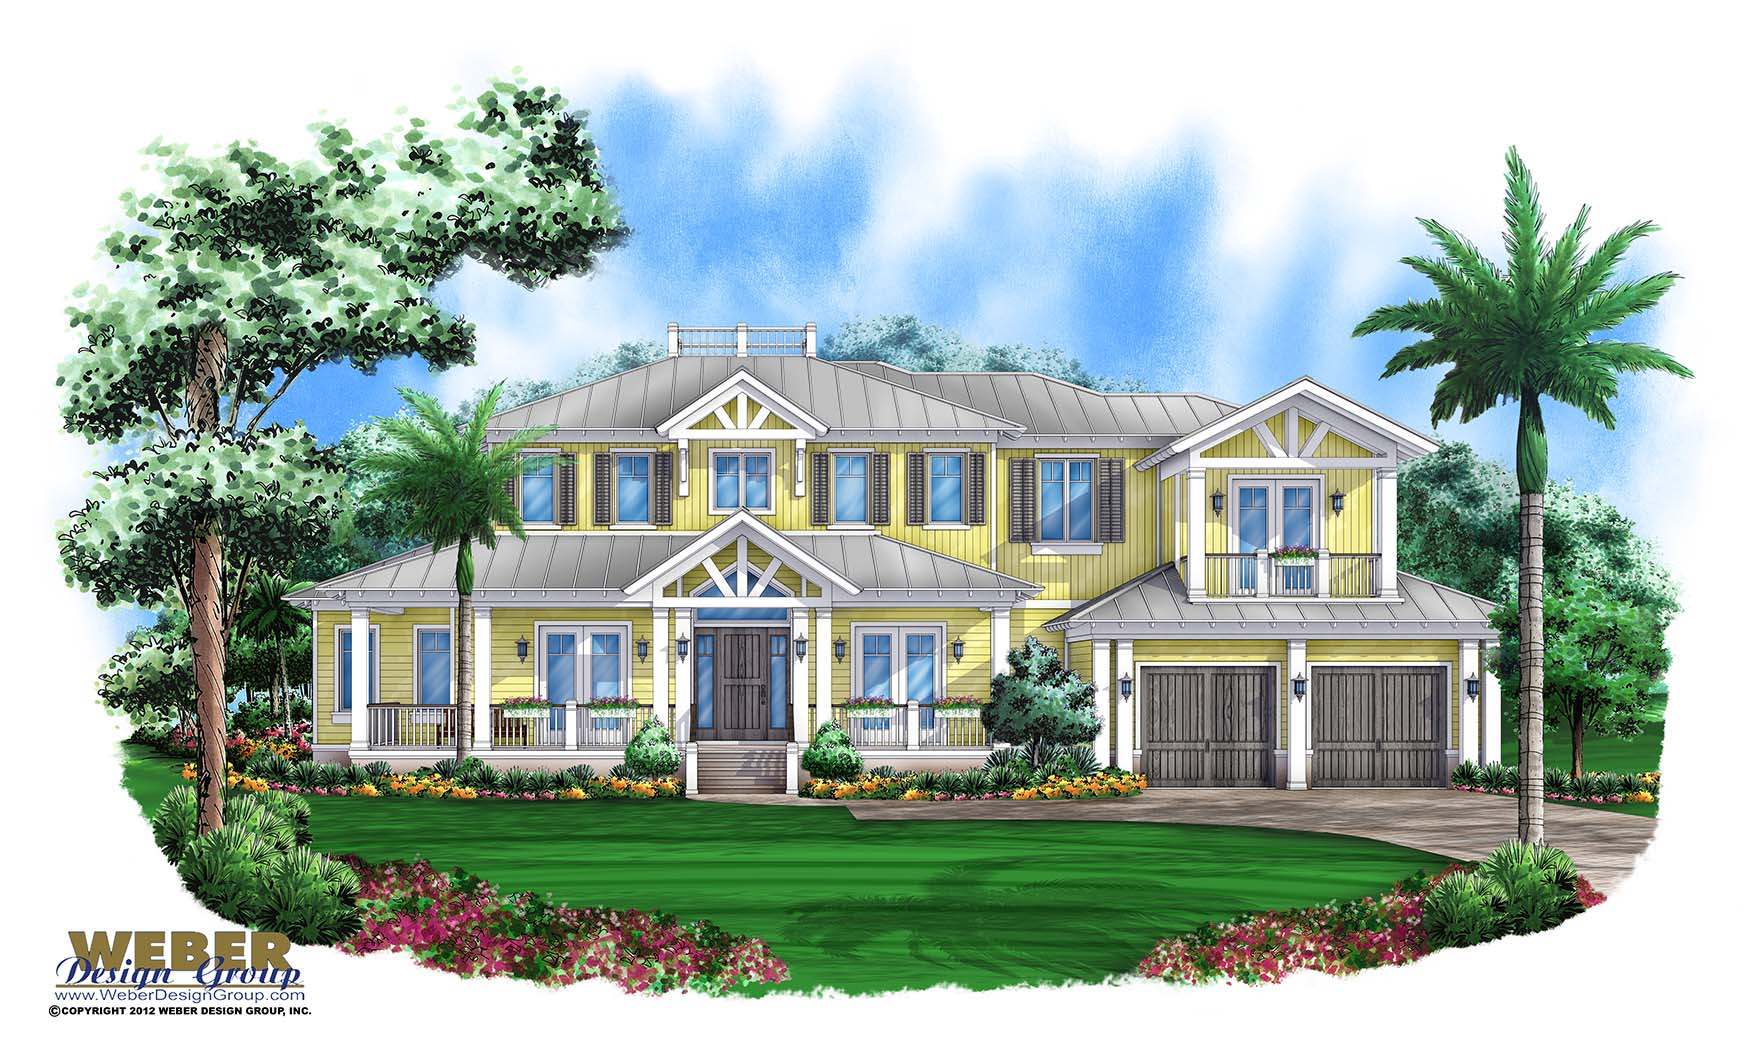 Key west house plans elevated coastal style architecture for Coastal style house plans